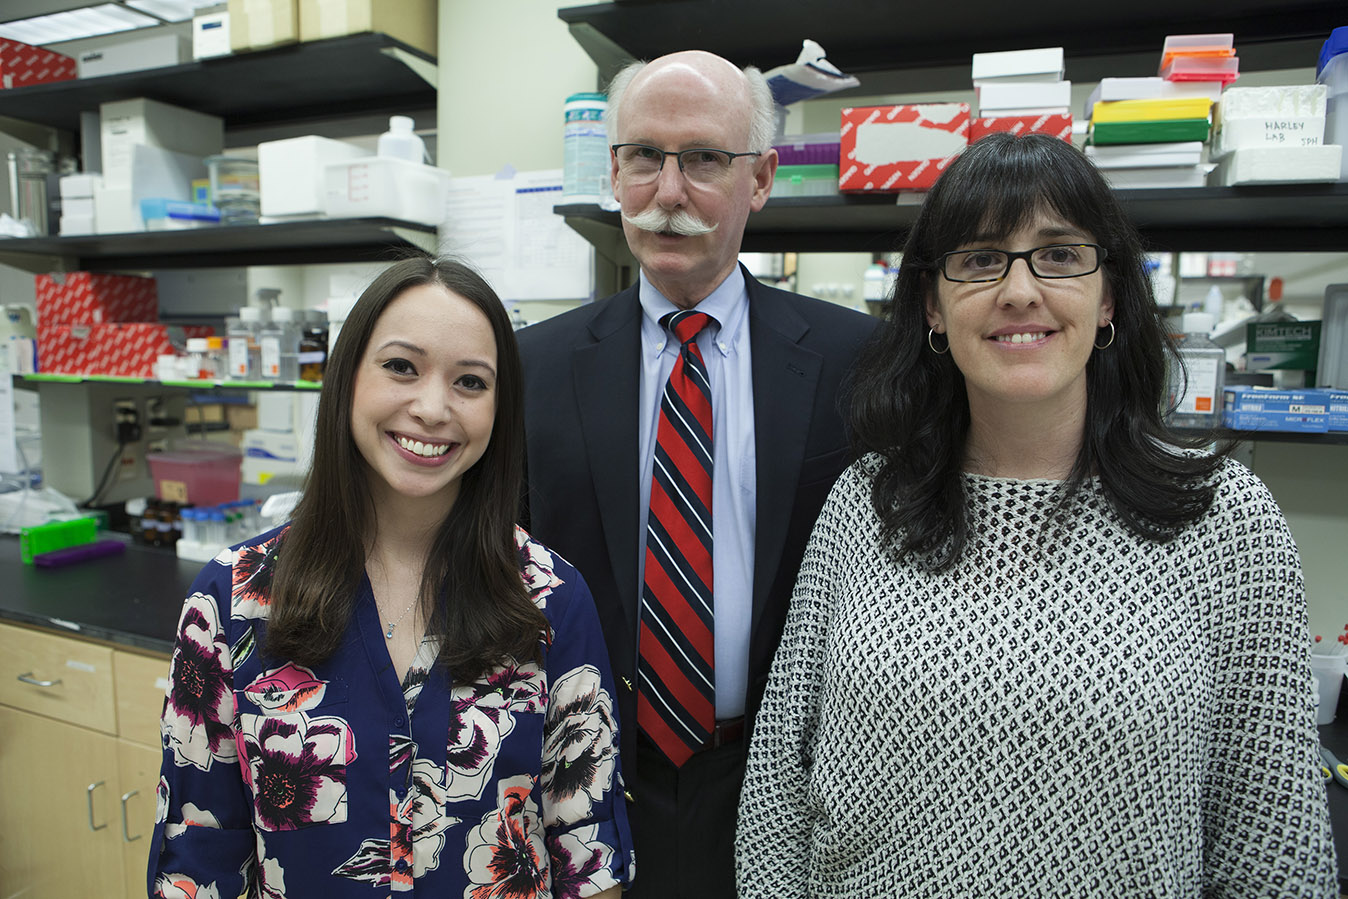 Illinios alumnus and former manager of Ecolab Scott Fisher (center) with PhD student Samantha Zambuto (left) and Research Assistant Professor Sara Pedron Haba (right)